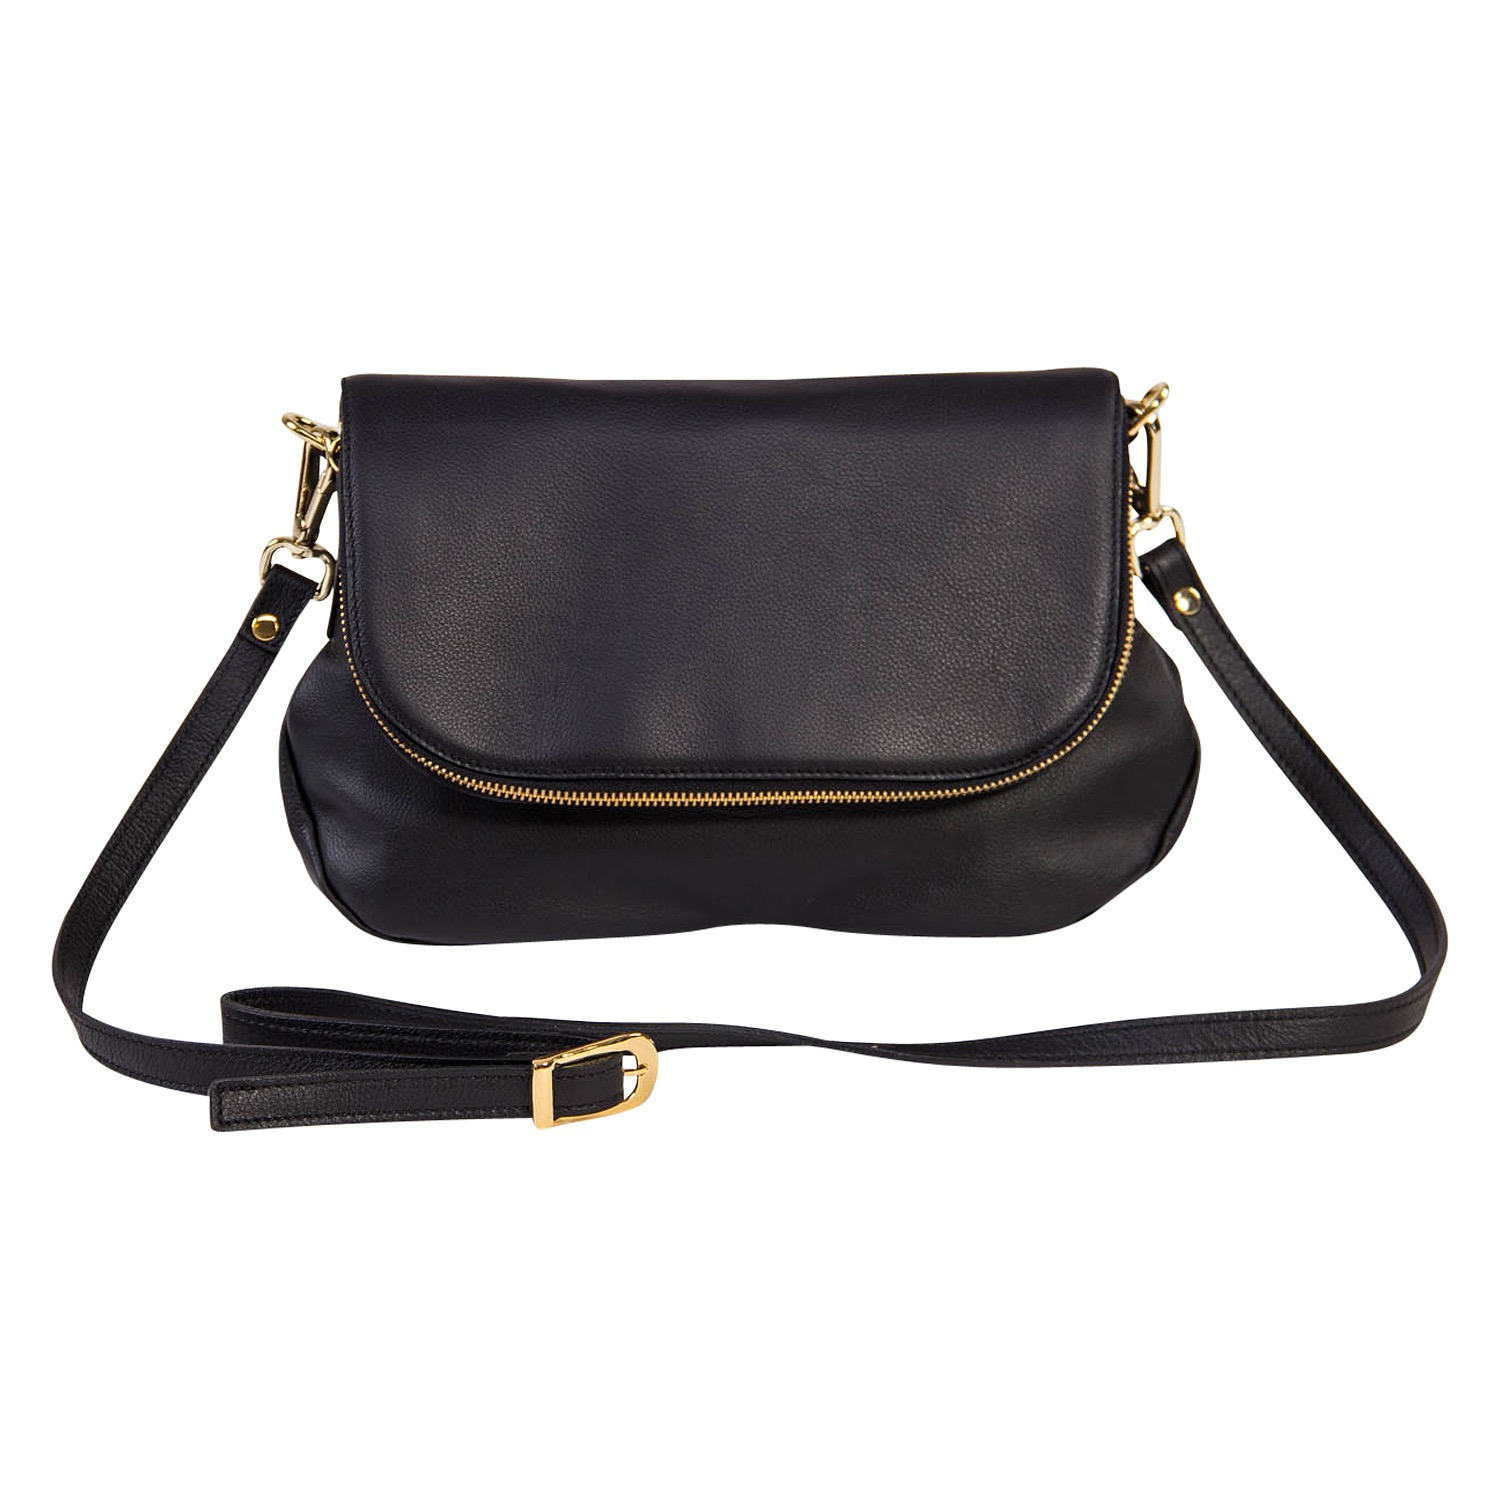 The Black & Gold Envelope Bag